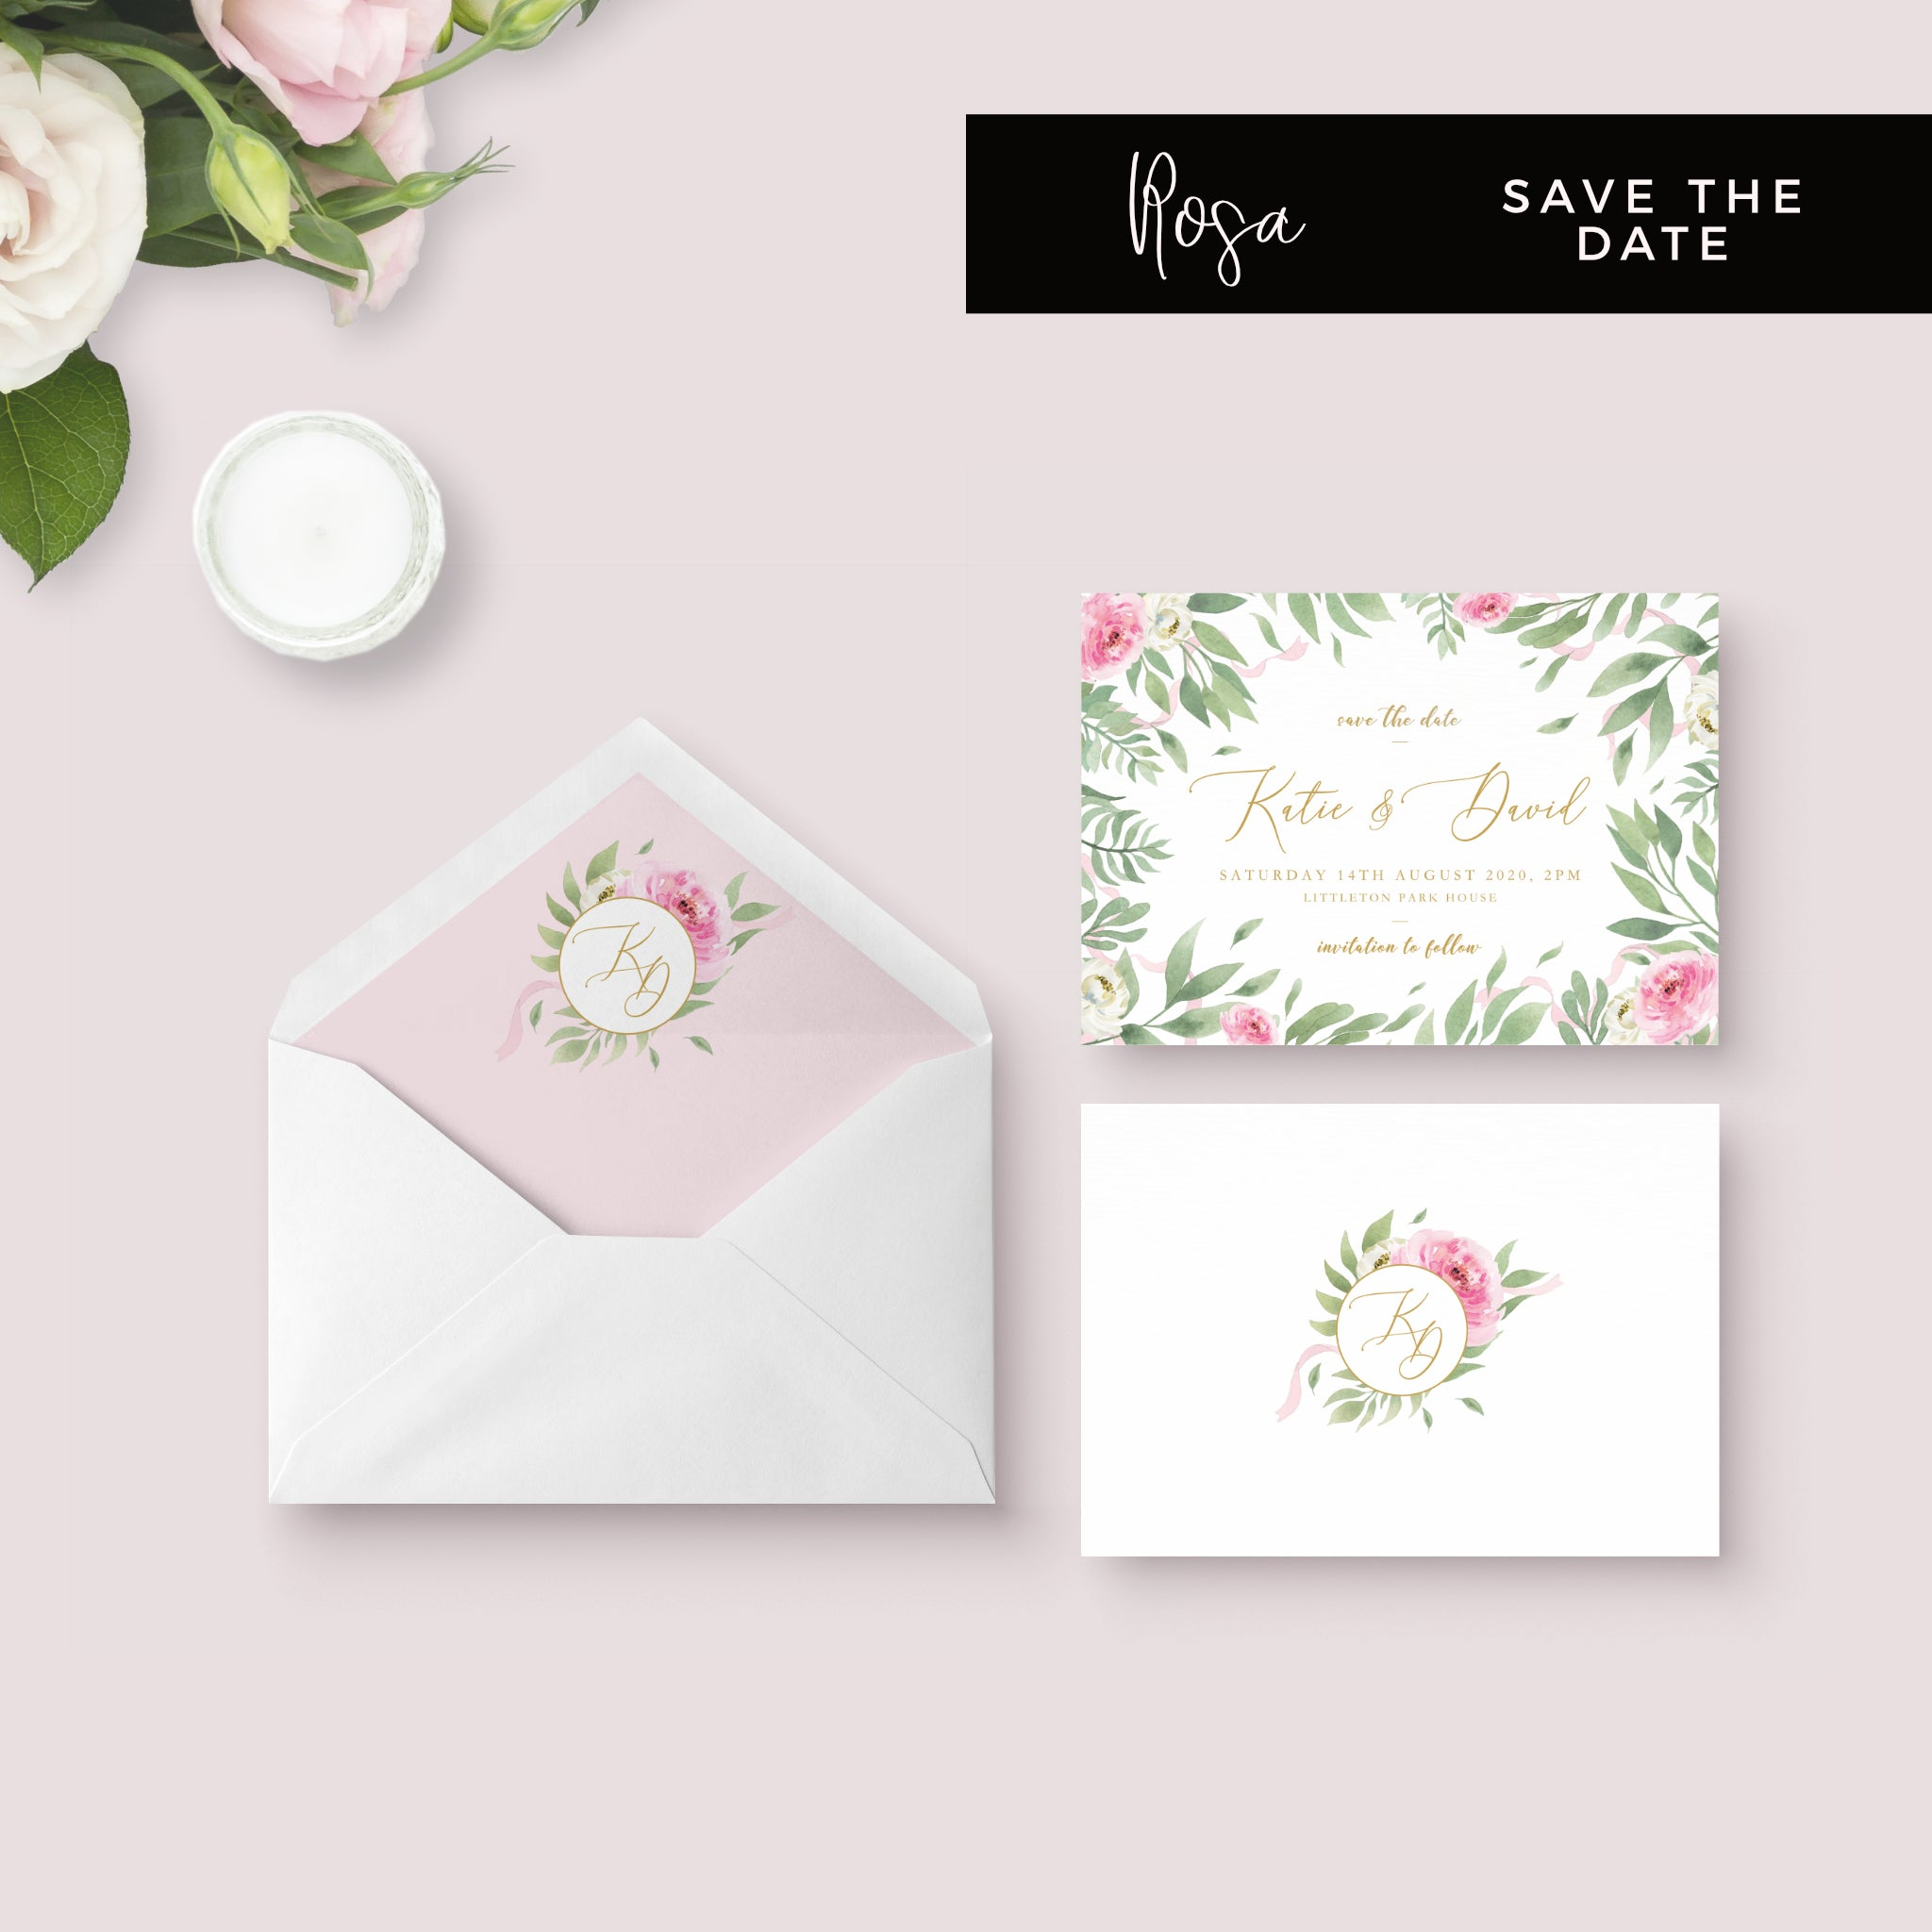 Rosa Blush Greenery Floral Print Wedding Save the Date Card with Envelope Liner